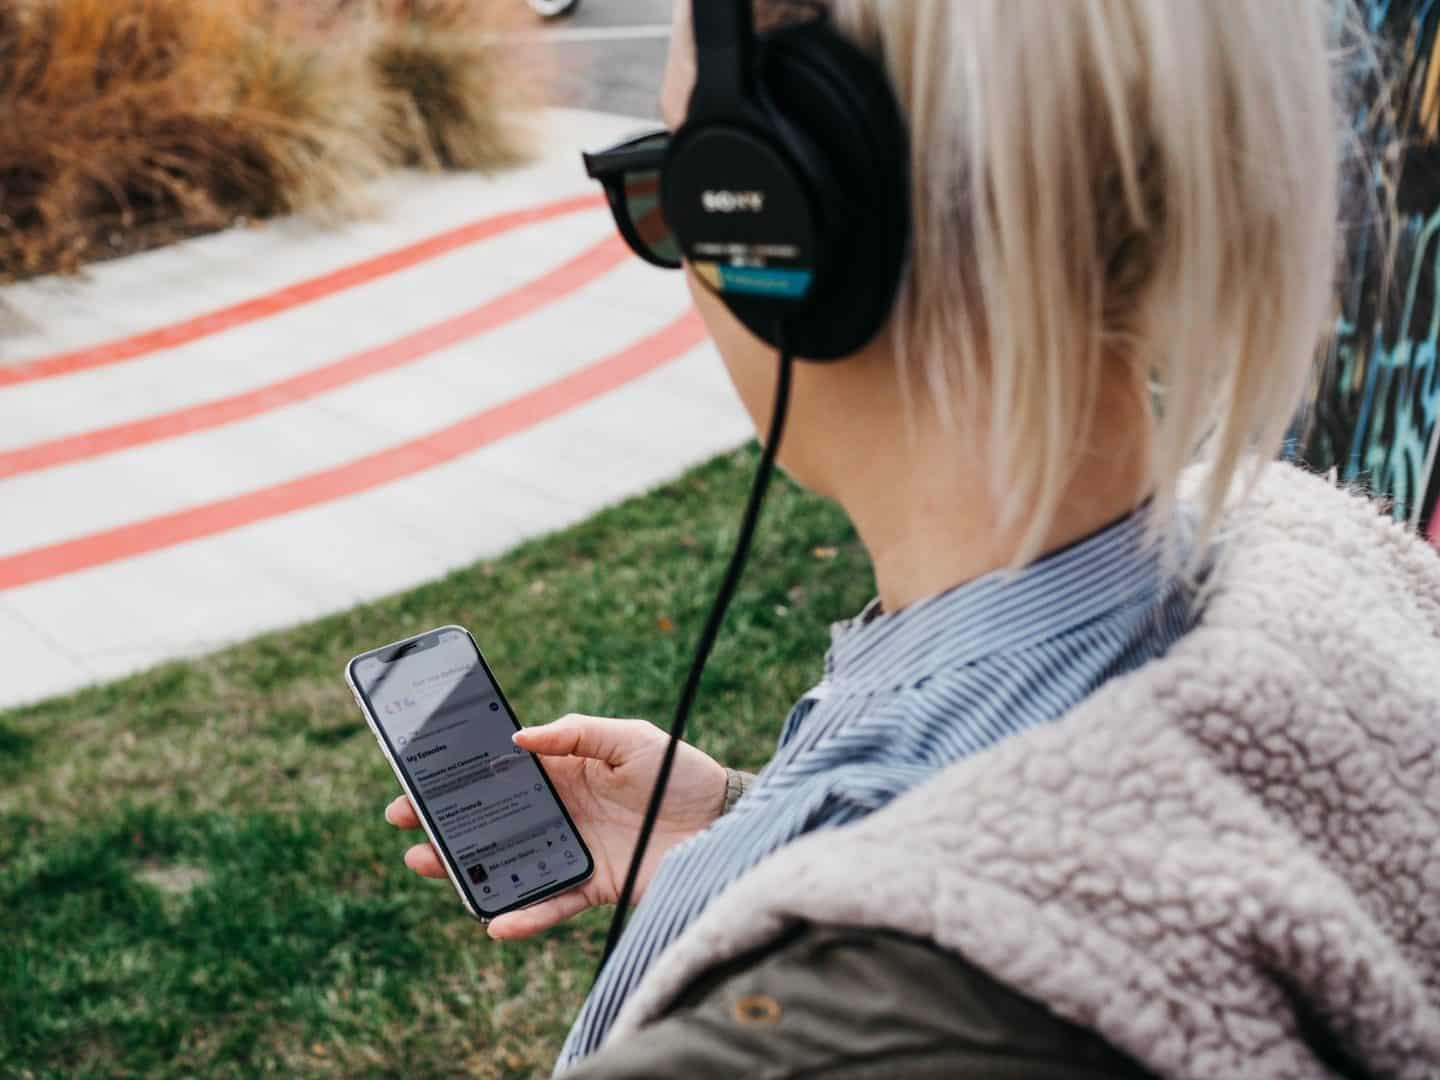 Enneagram Types, Favorite Podcasts, and More